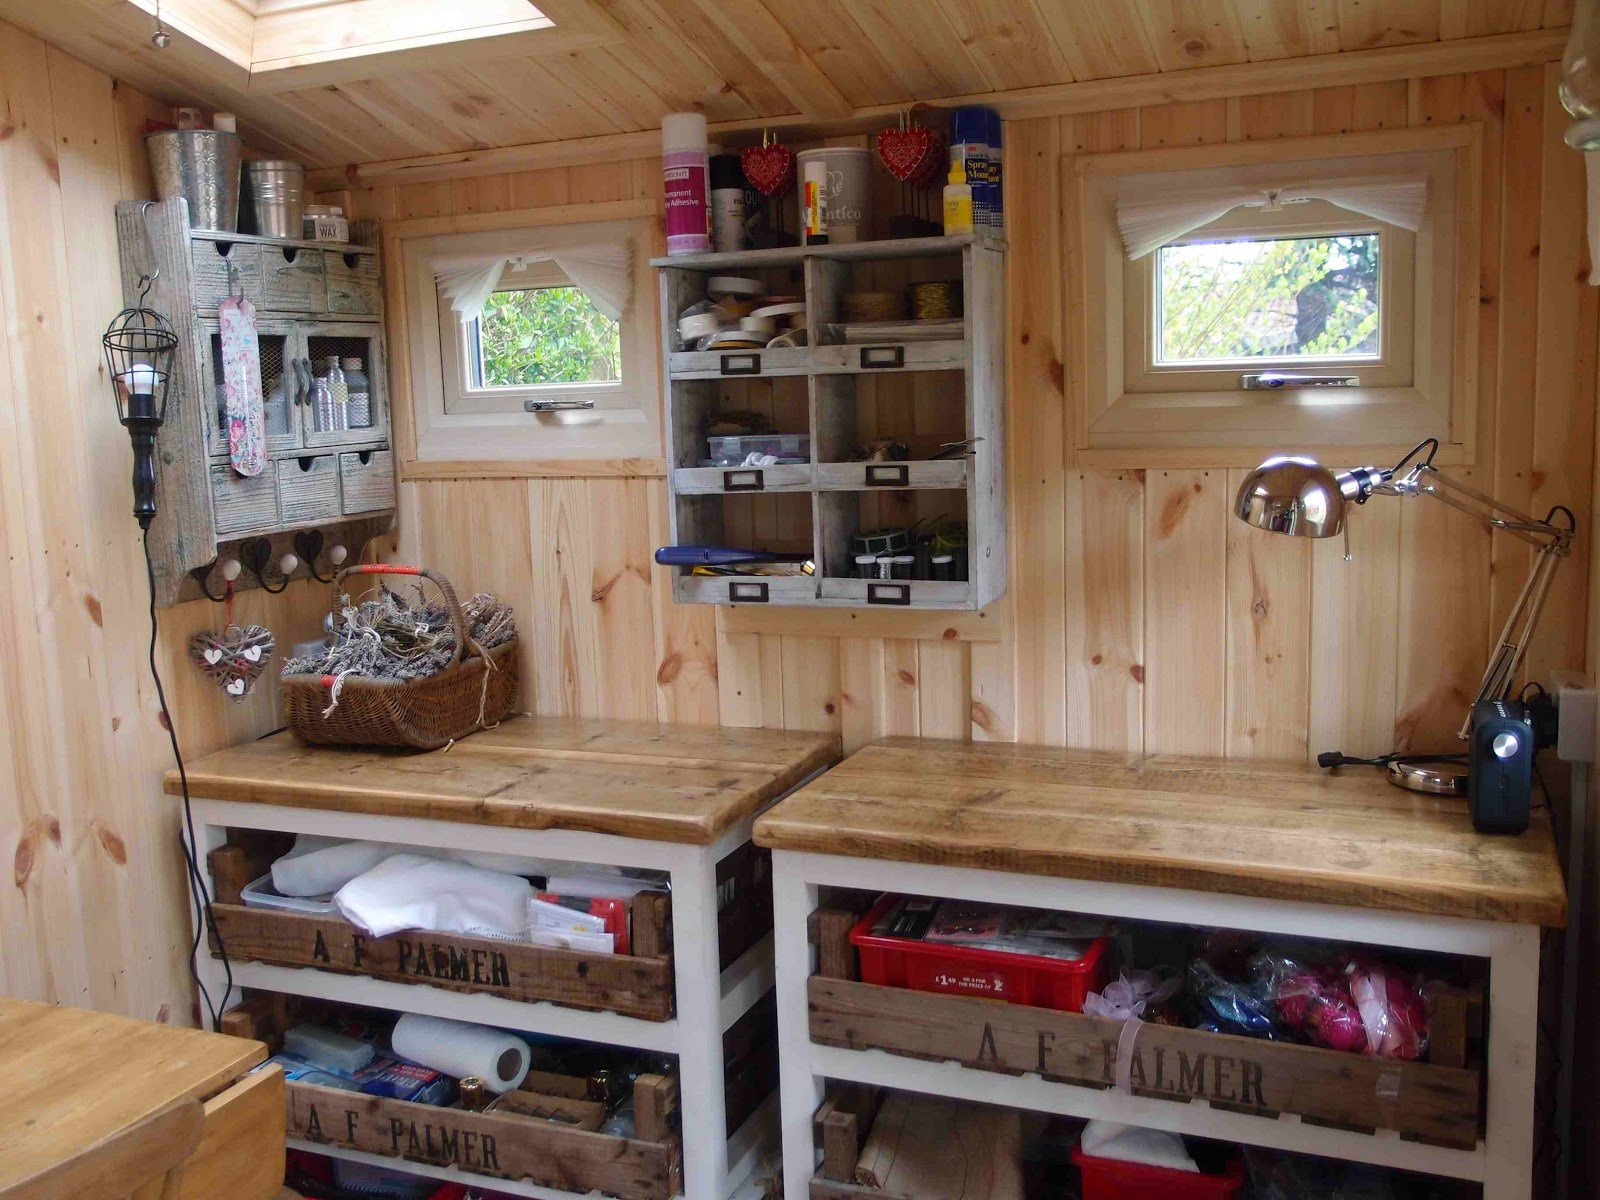 Shedworking catherine simpson 39 s 39 wendy house 39 for Wendy house ideas inside